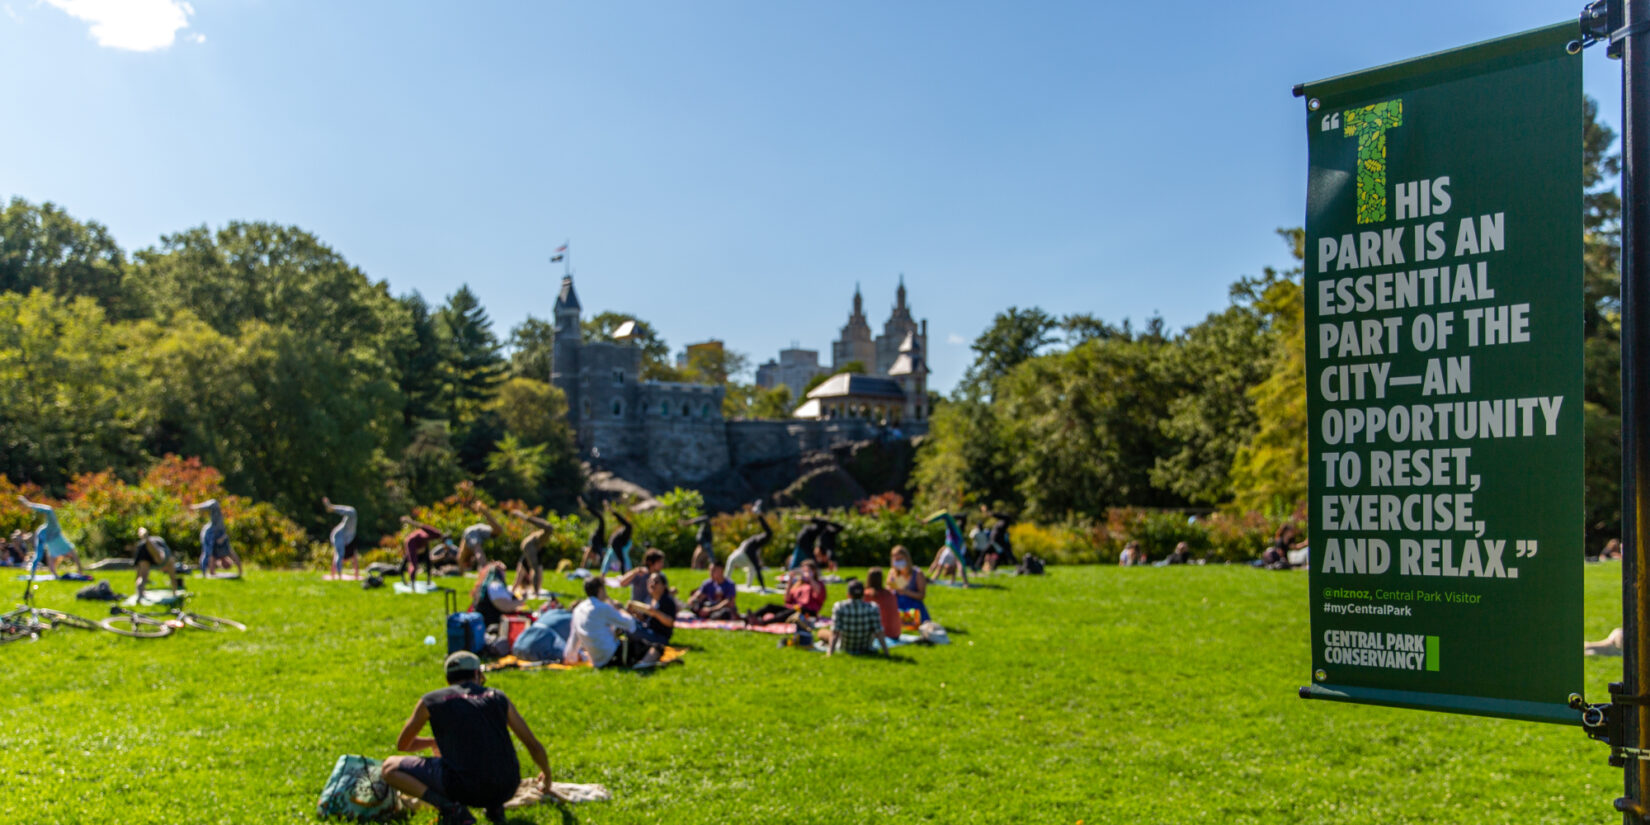 An example of the banners highlight this photo of parkgoers lounging on a lawn.